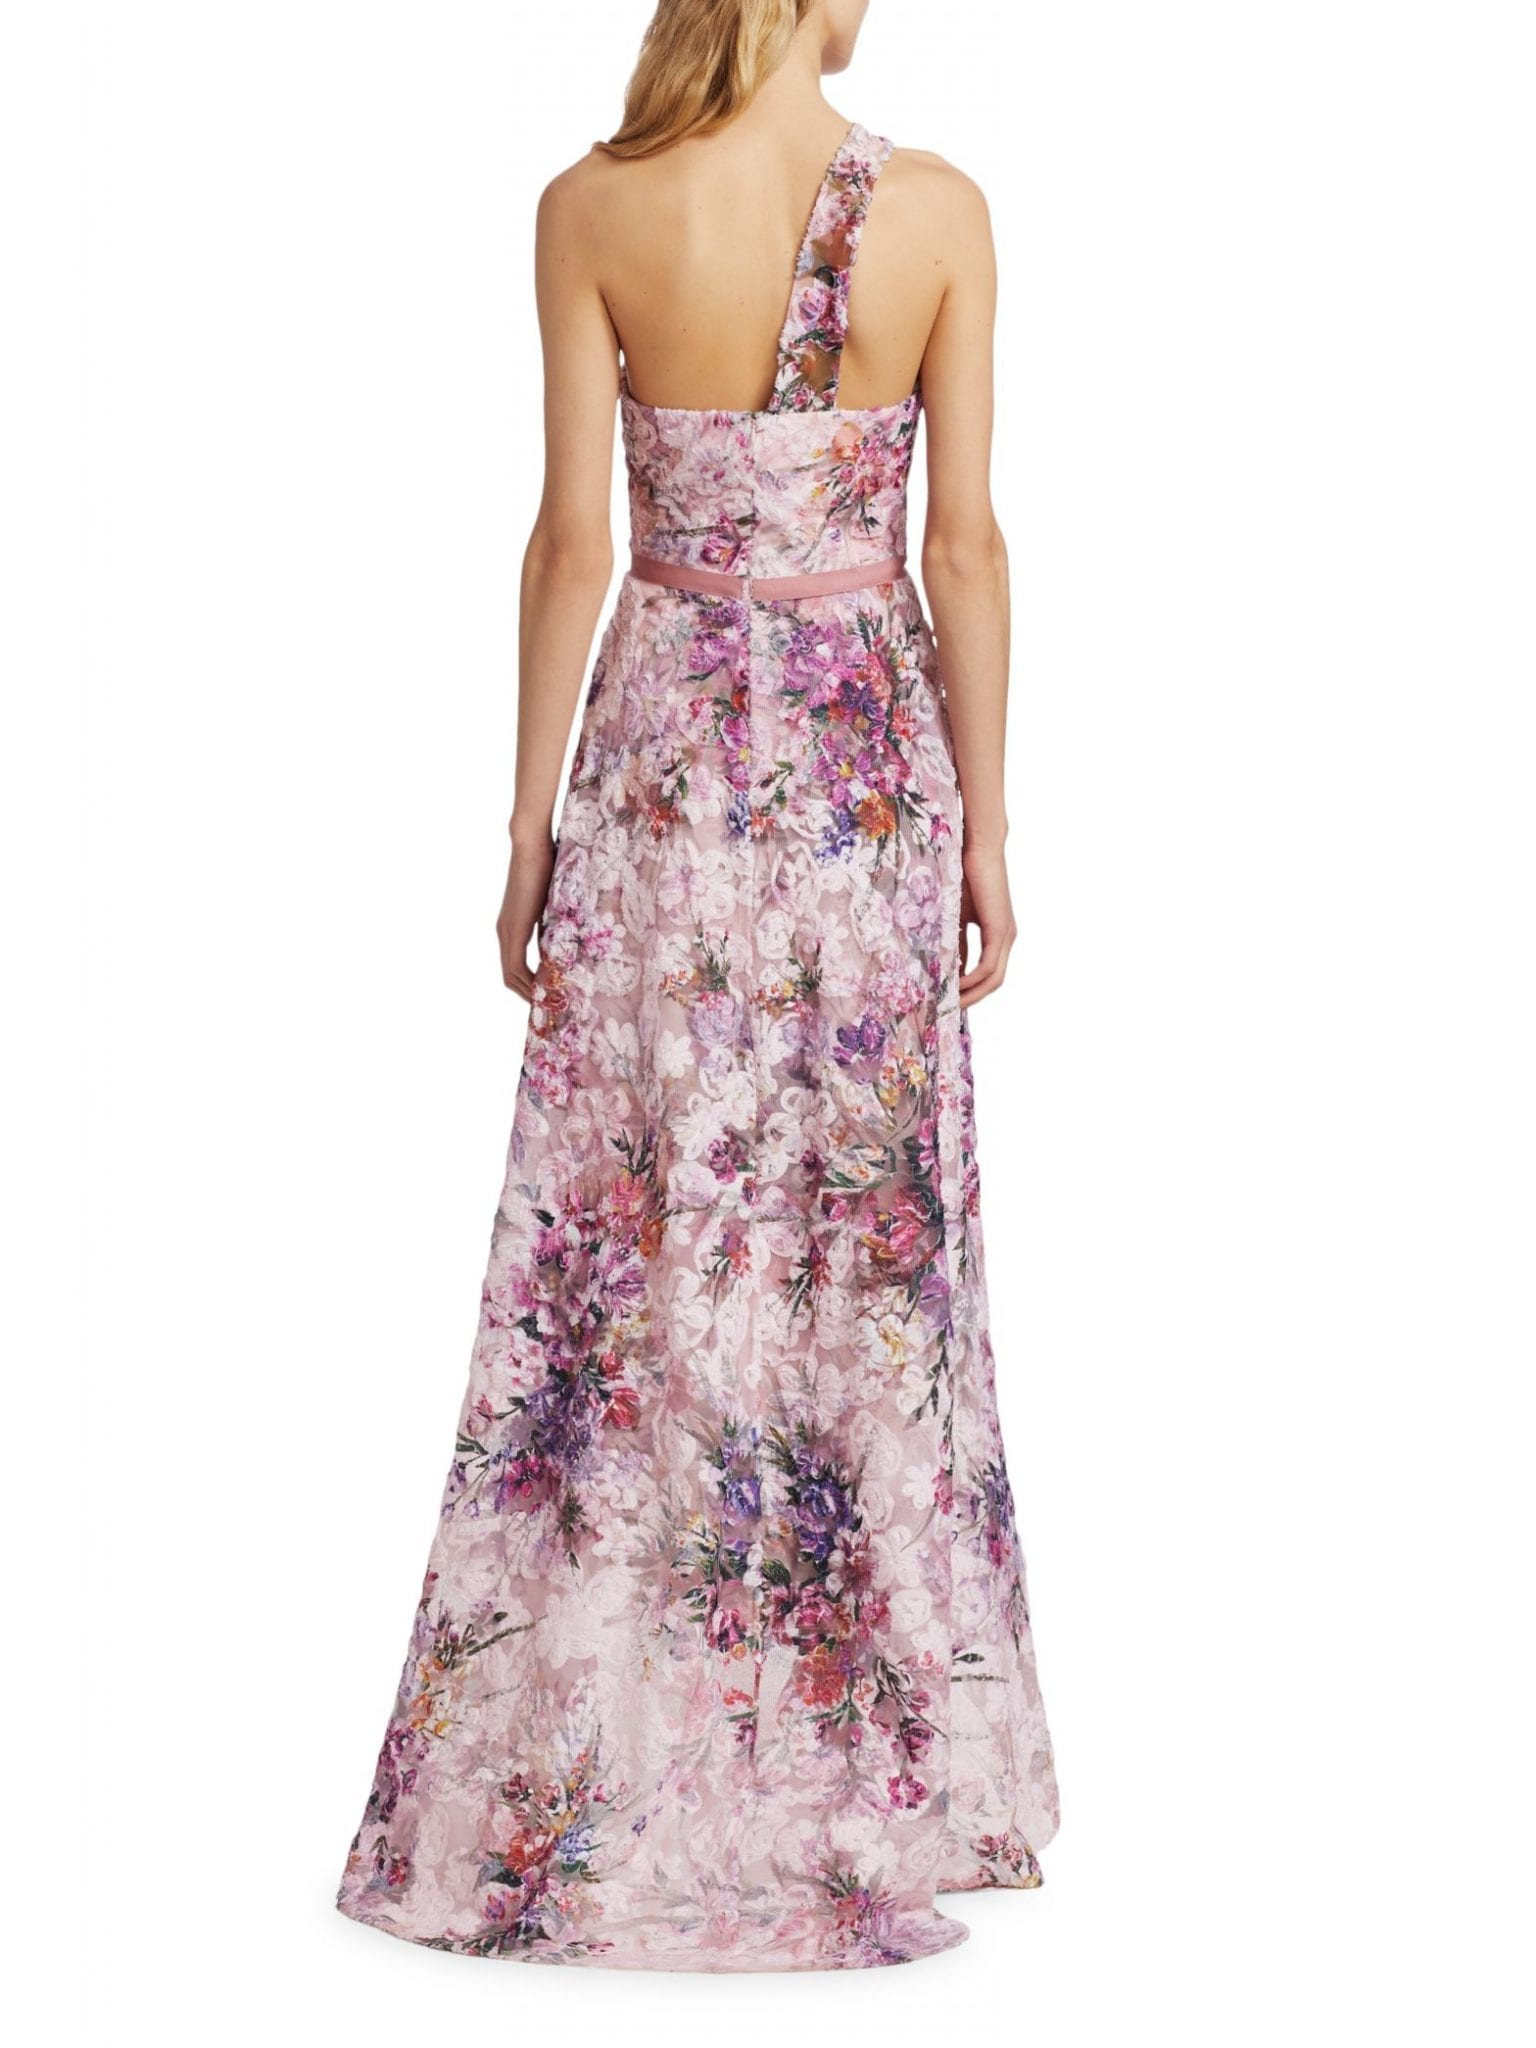 MARCHESA NOTTE Floral Asymmetrical High-low Gown